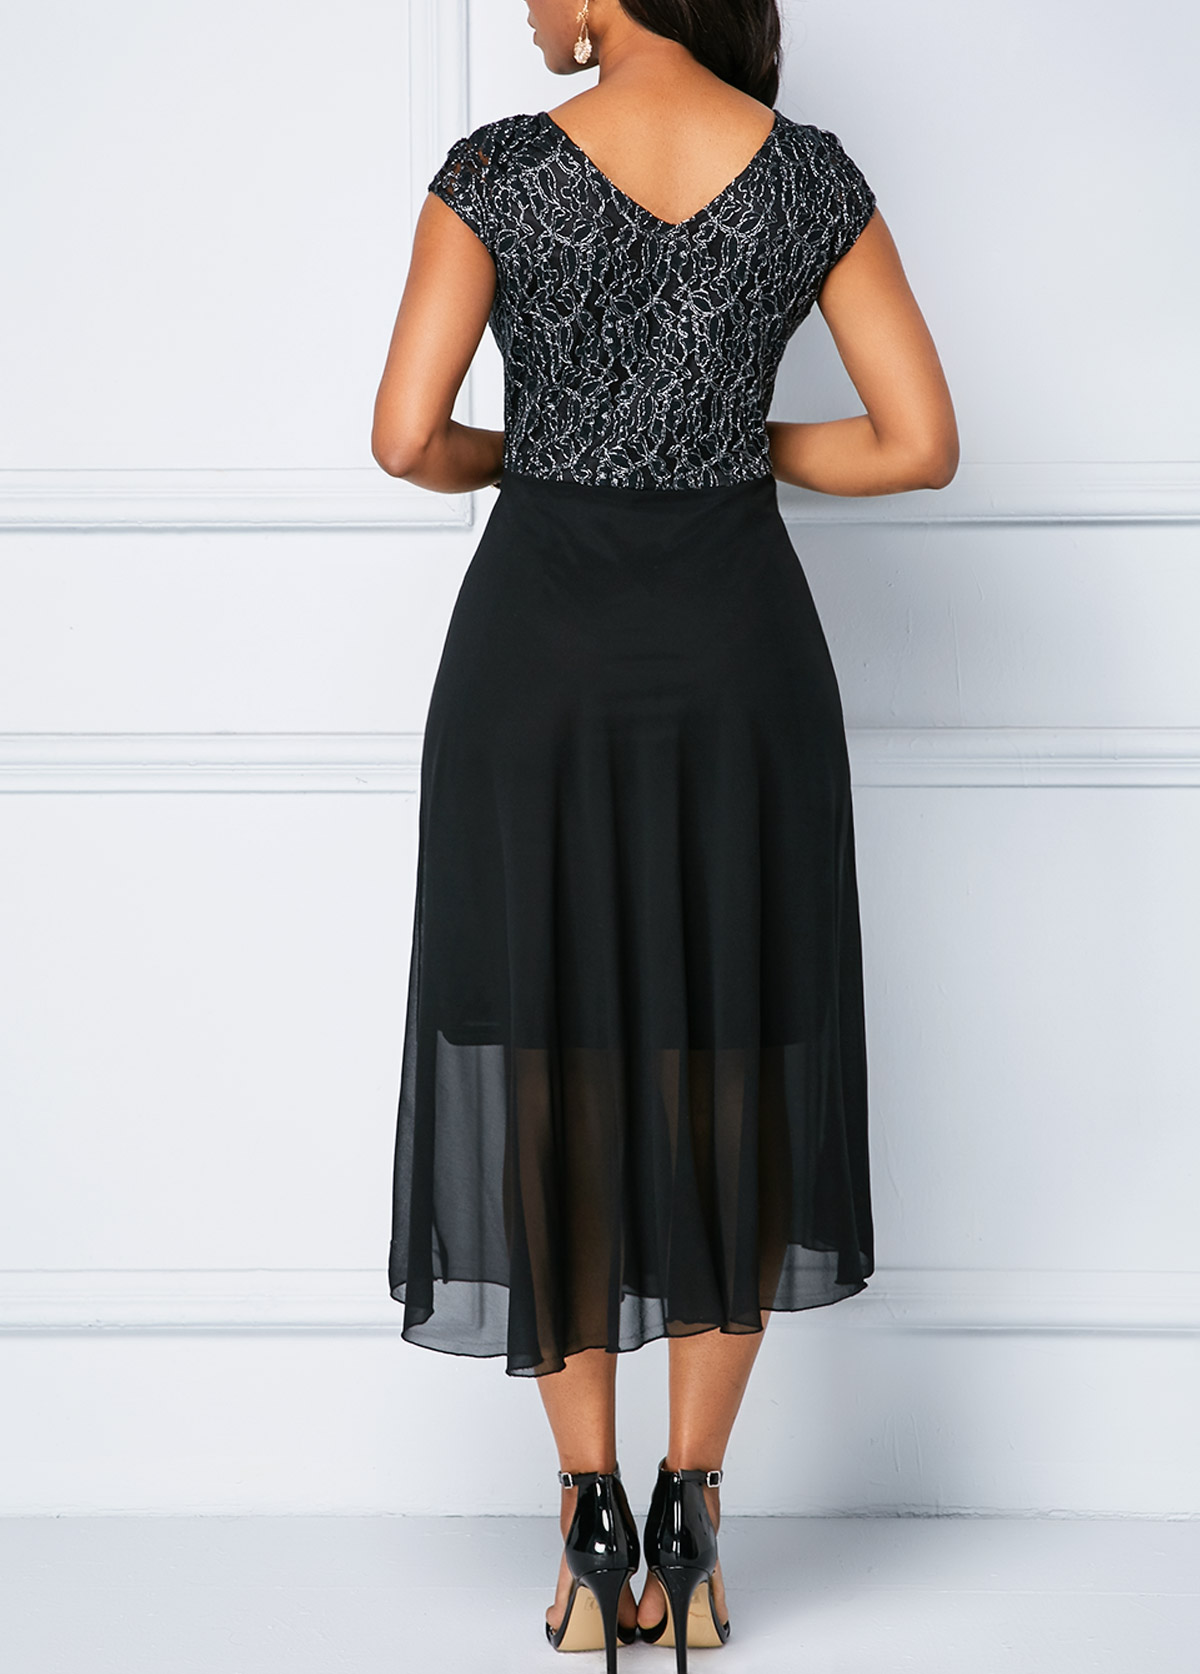 Cap Sleeve Lace Patchwork Chiffon Dress